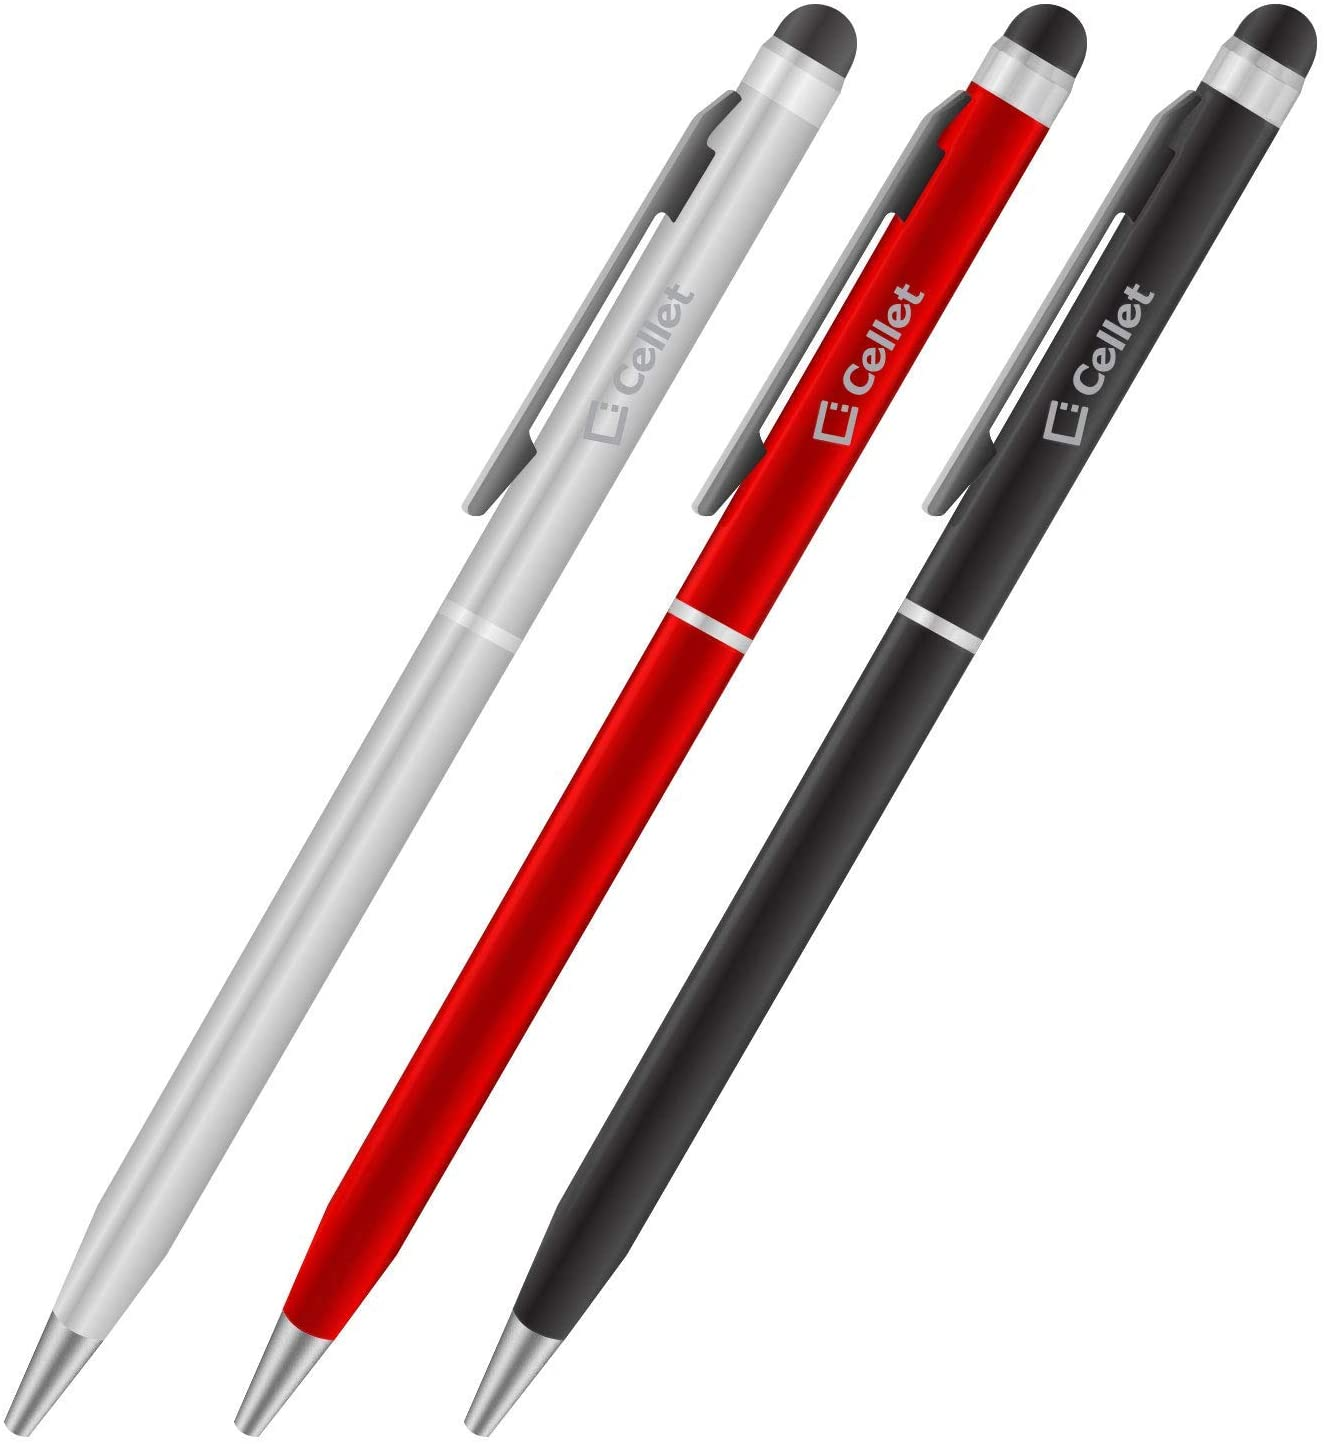 PRO Stylus Pen for Lenovo Vibe X2 Pro with Ink, High Accuracy, Extra Sensitive, Compact Form for Touch Screens [3 Pack-Black-Red-Silver]